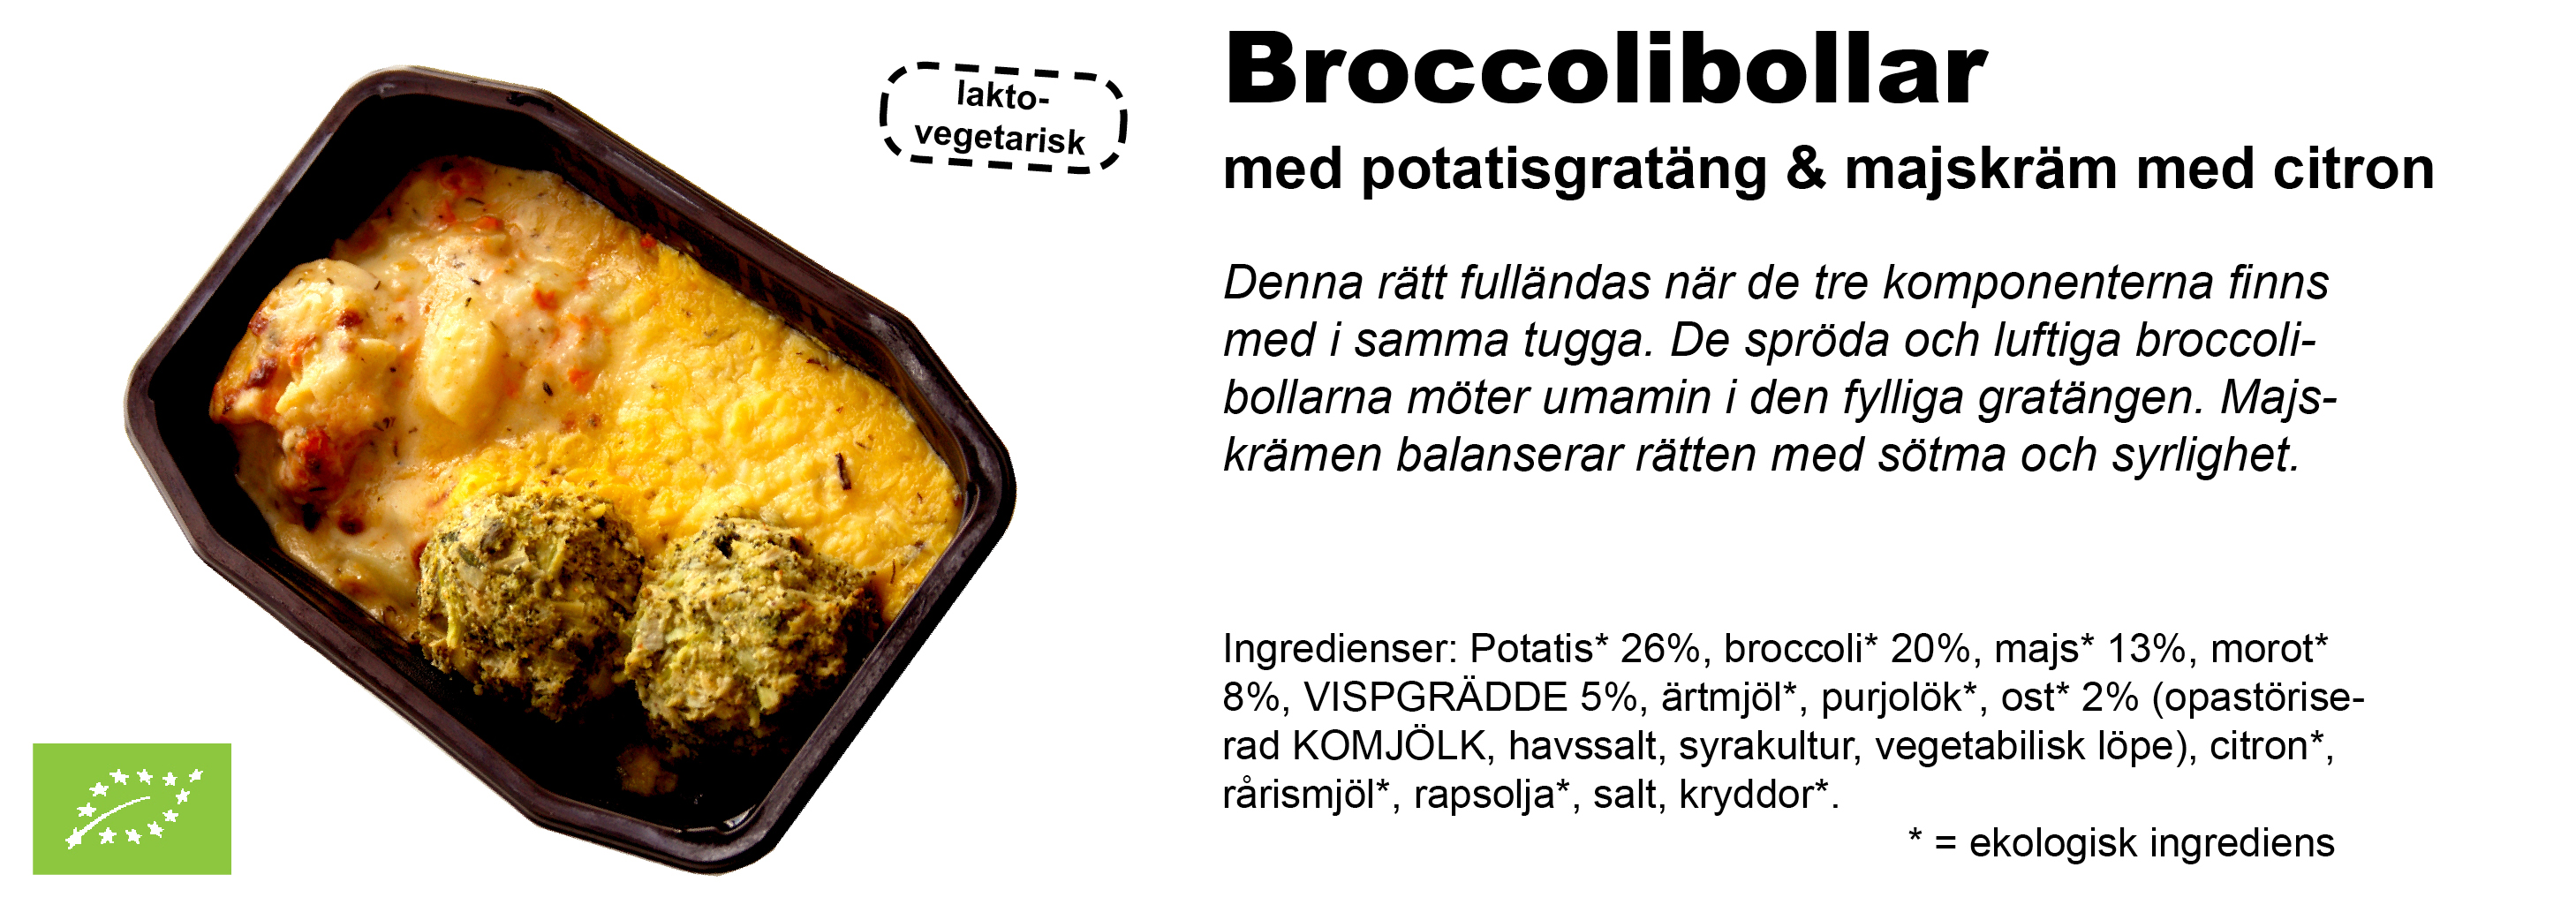 Broccolibollar3_layout